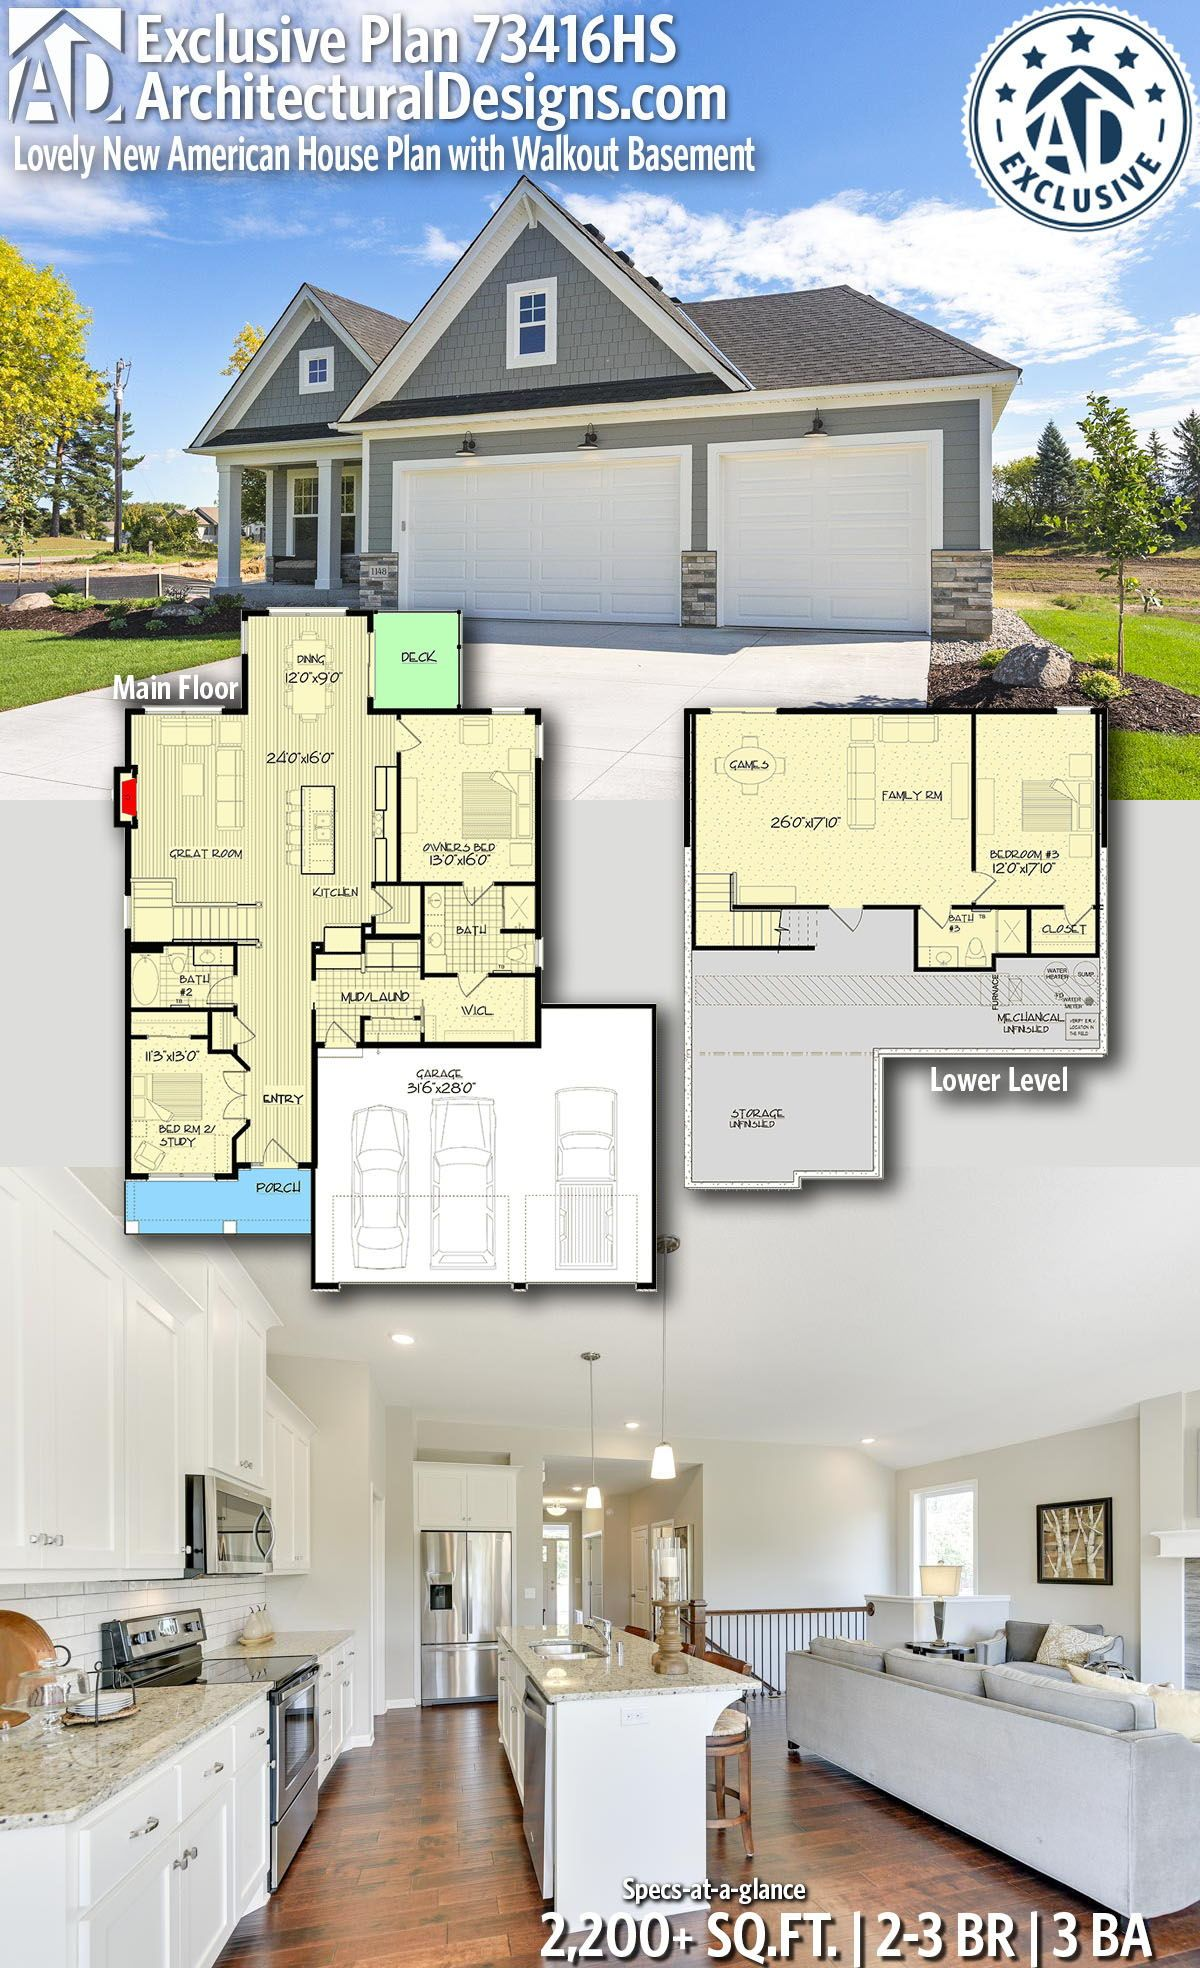 Plan 73416hs Lovely New American House Plan With Walkout Basement American Houses House Plans Basement House Plans